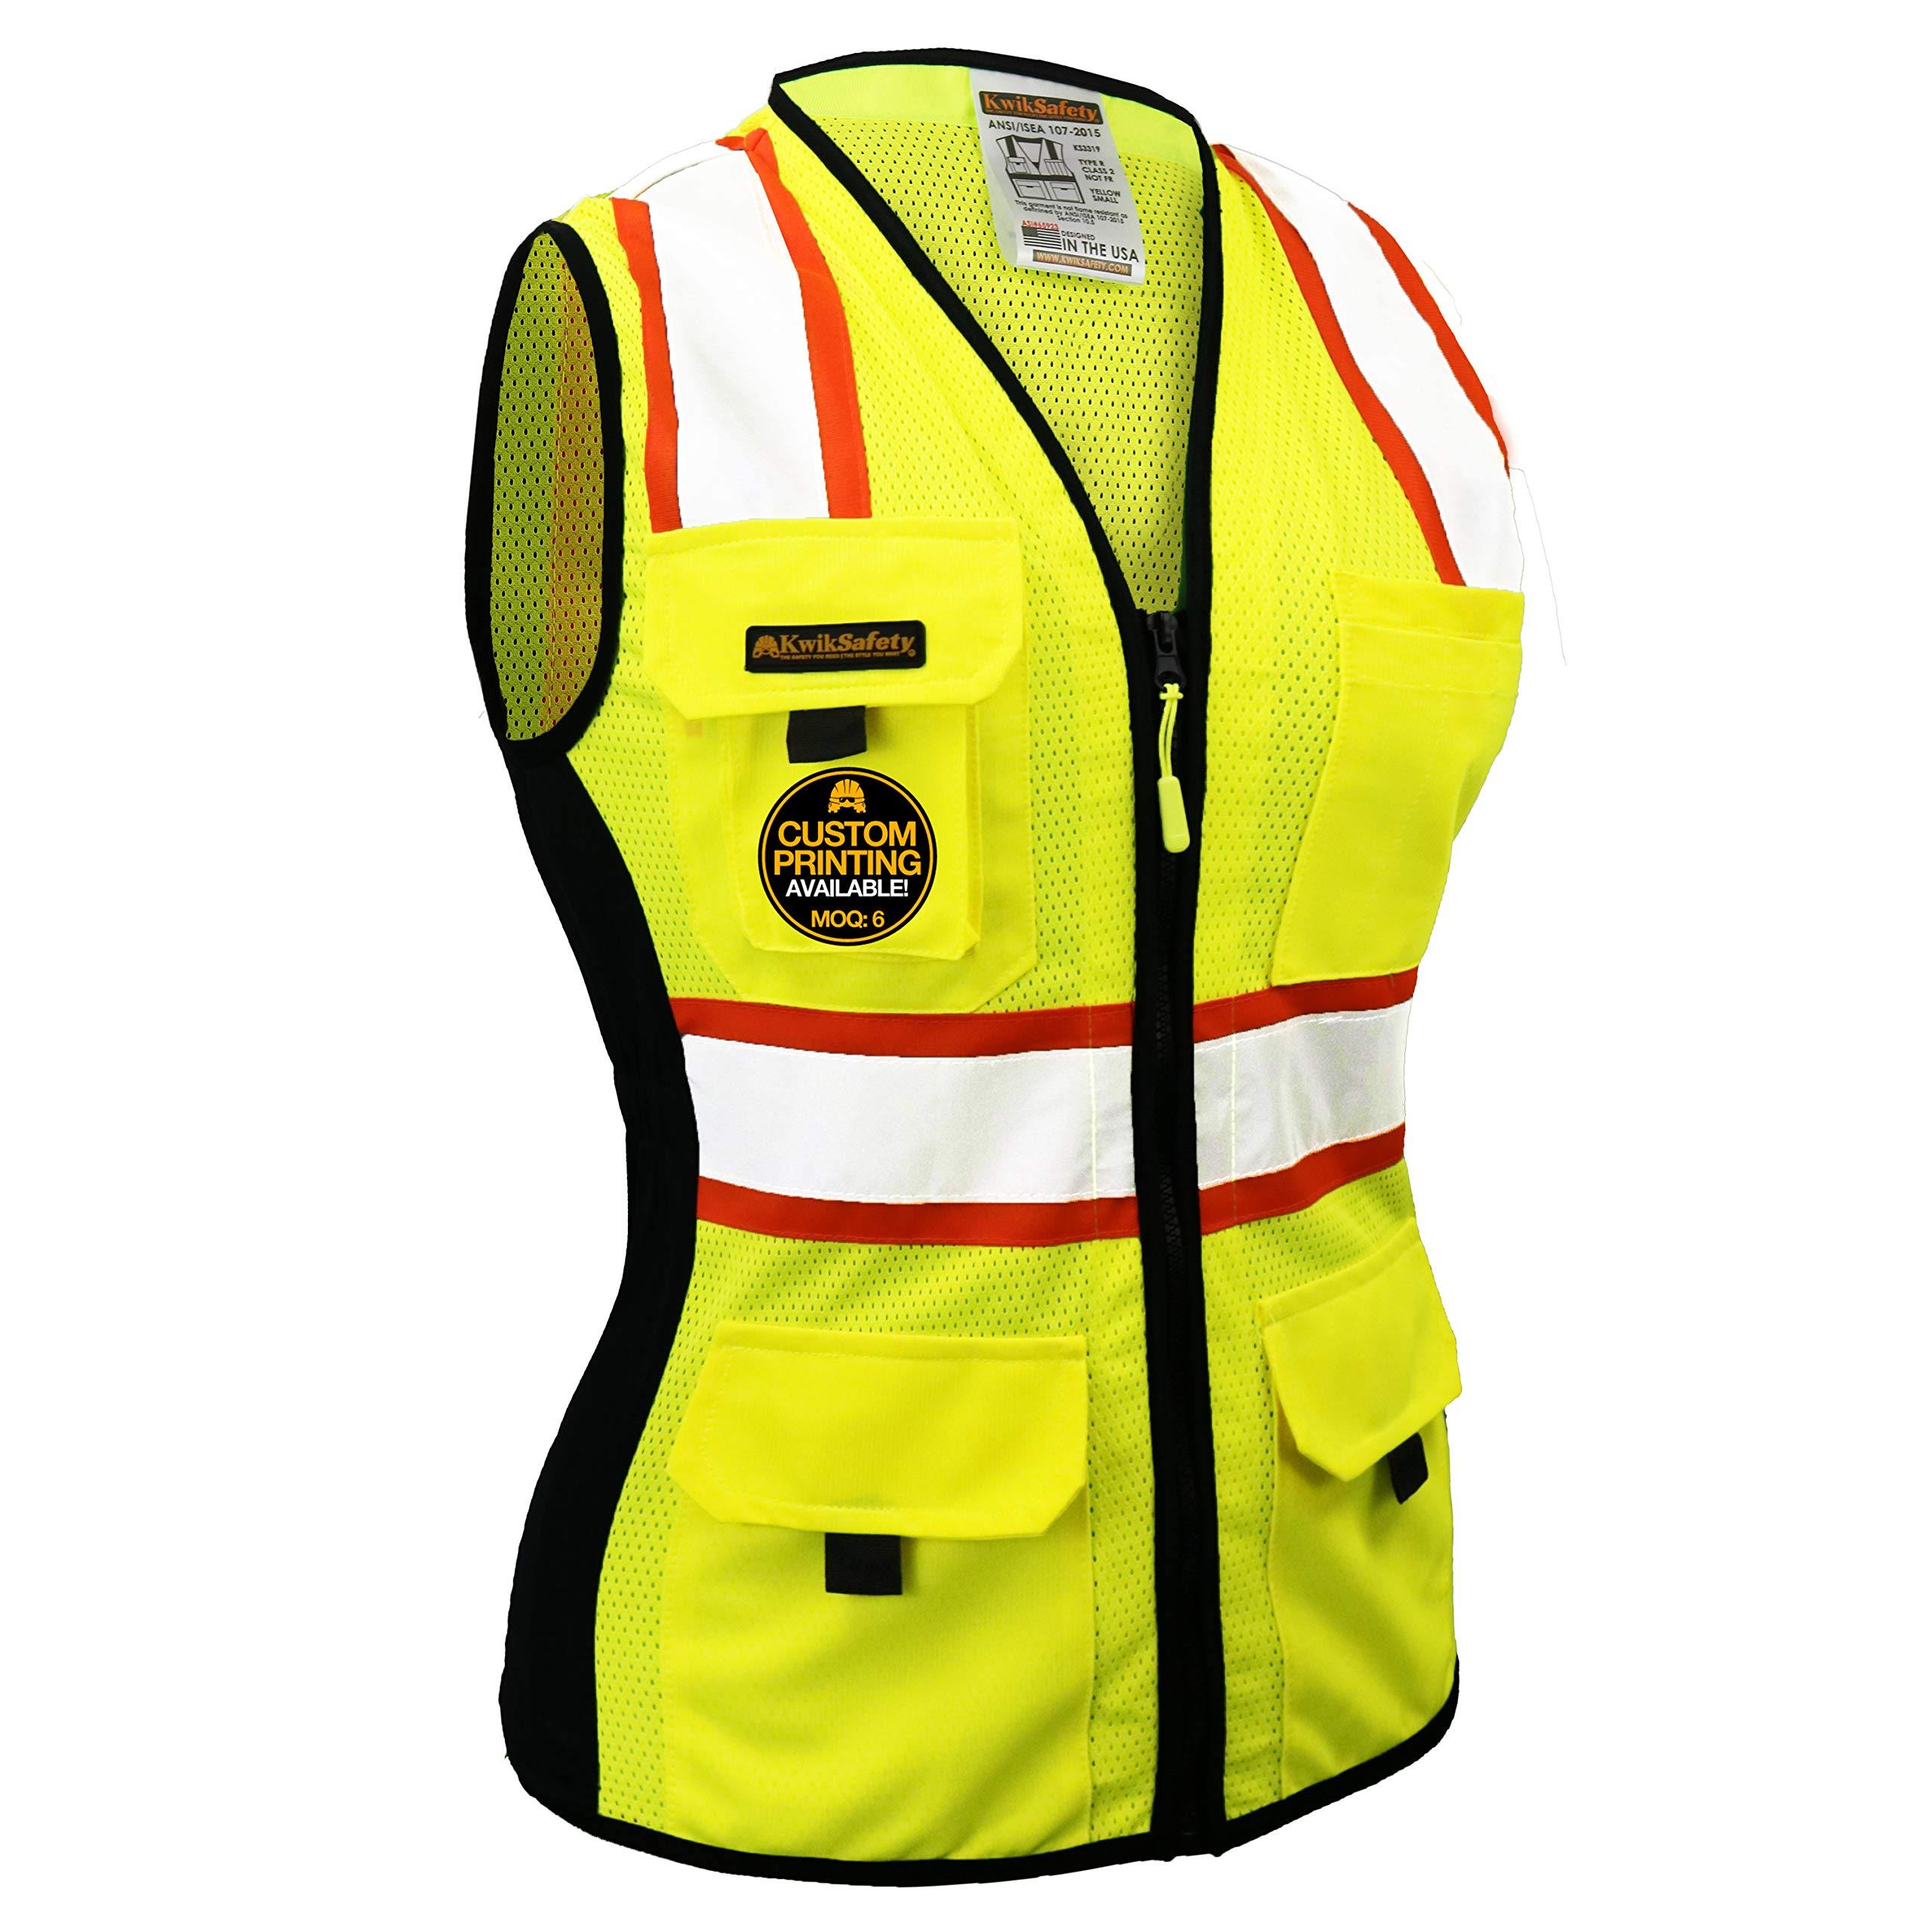 KwikSafety (Charlotte, NC) FIRST LADY Safety Vest for Women | Class 2 ANSI OSHA PPE | High Visibility Heavy Duty Mesh Pockets Zipper | Hi-Vis Construction Work Hi-Vis Surveyor Female | Yellow Small by KwikSafety